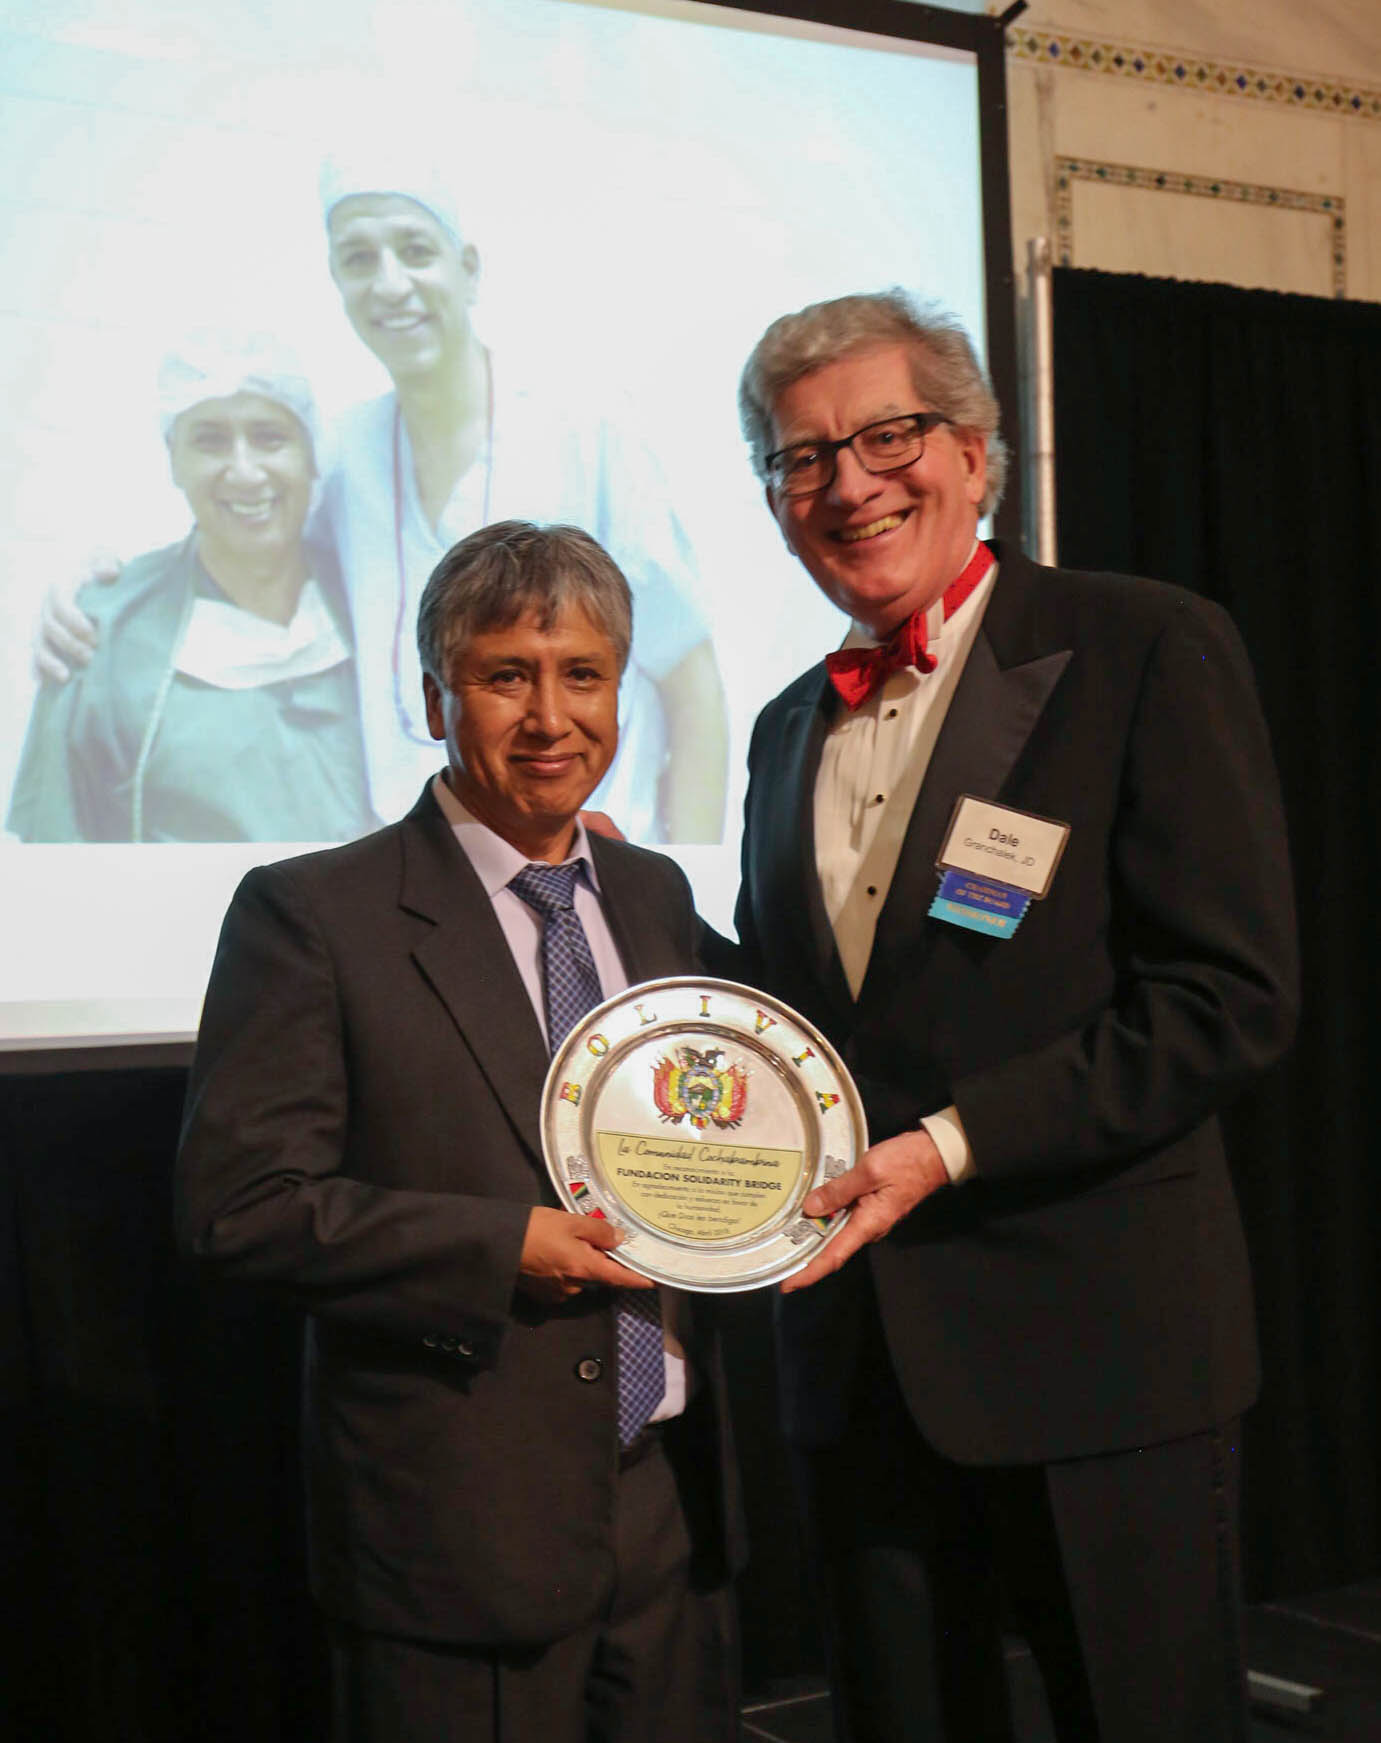 Dr. Vallejos and SB Board Chair Dale Granchalek